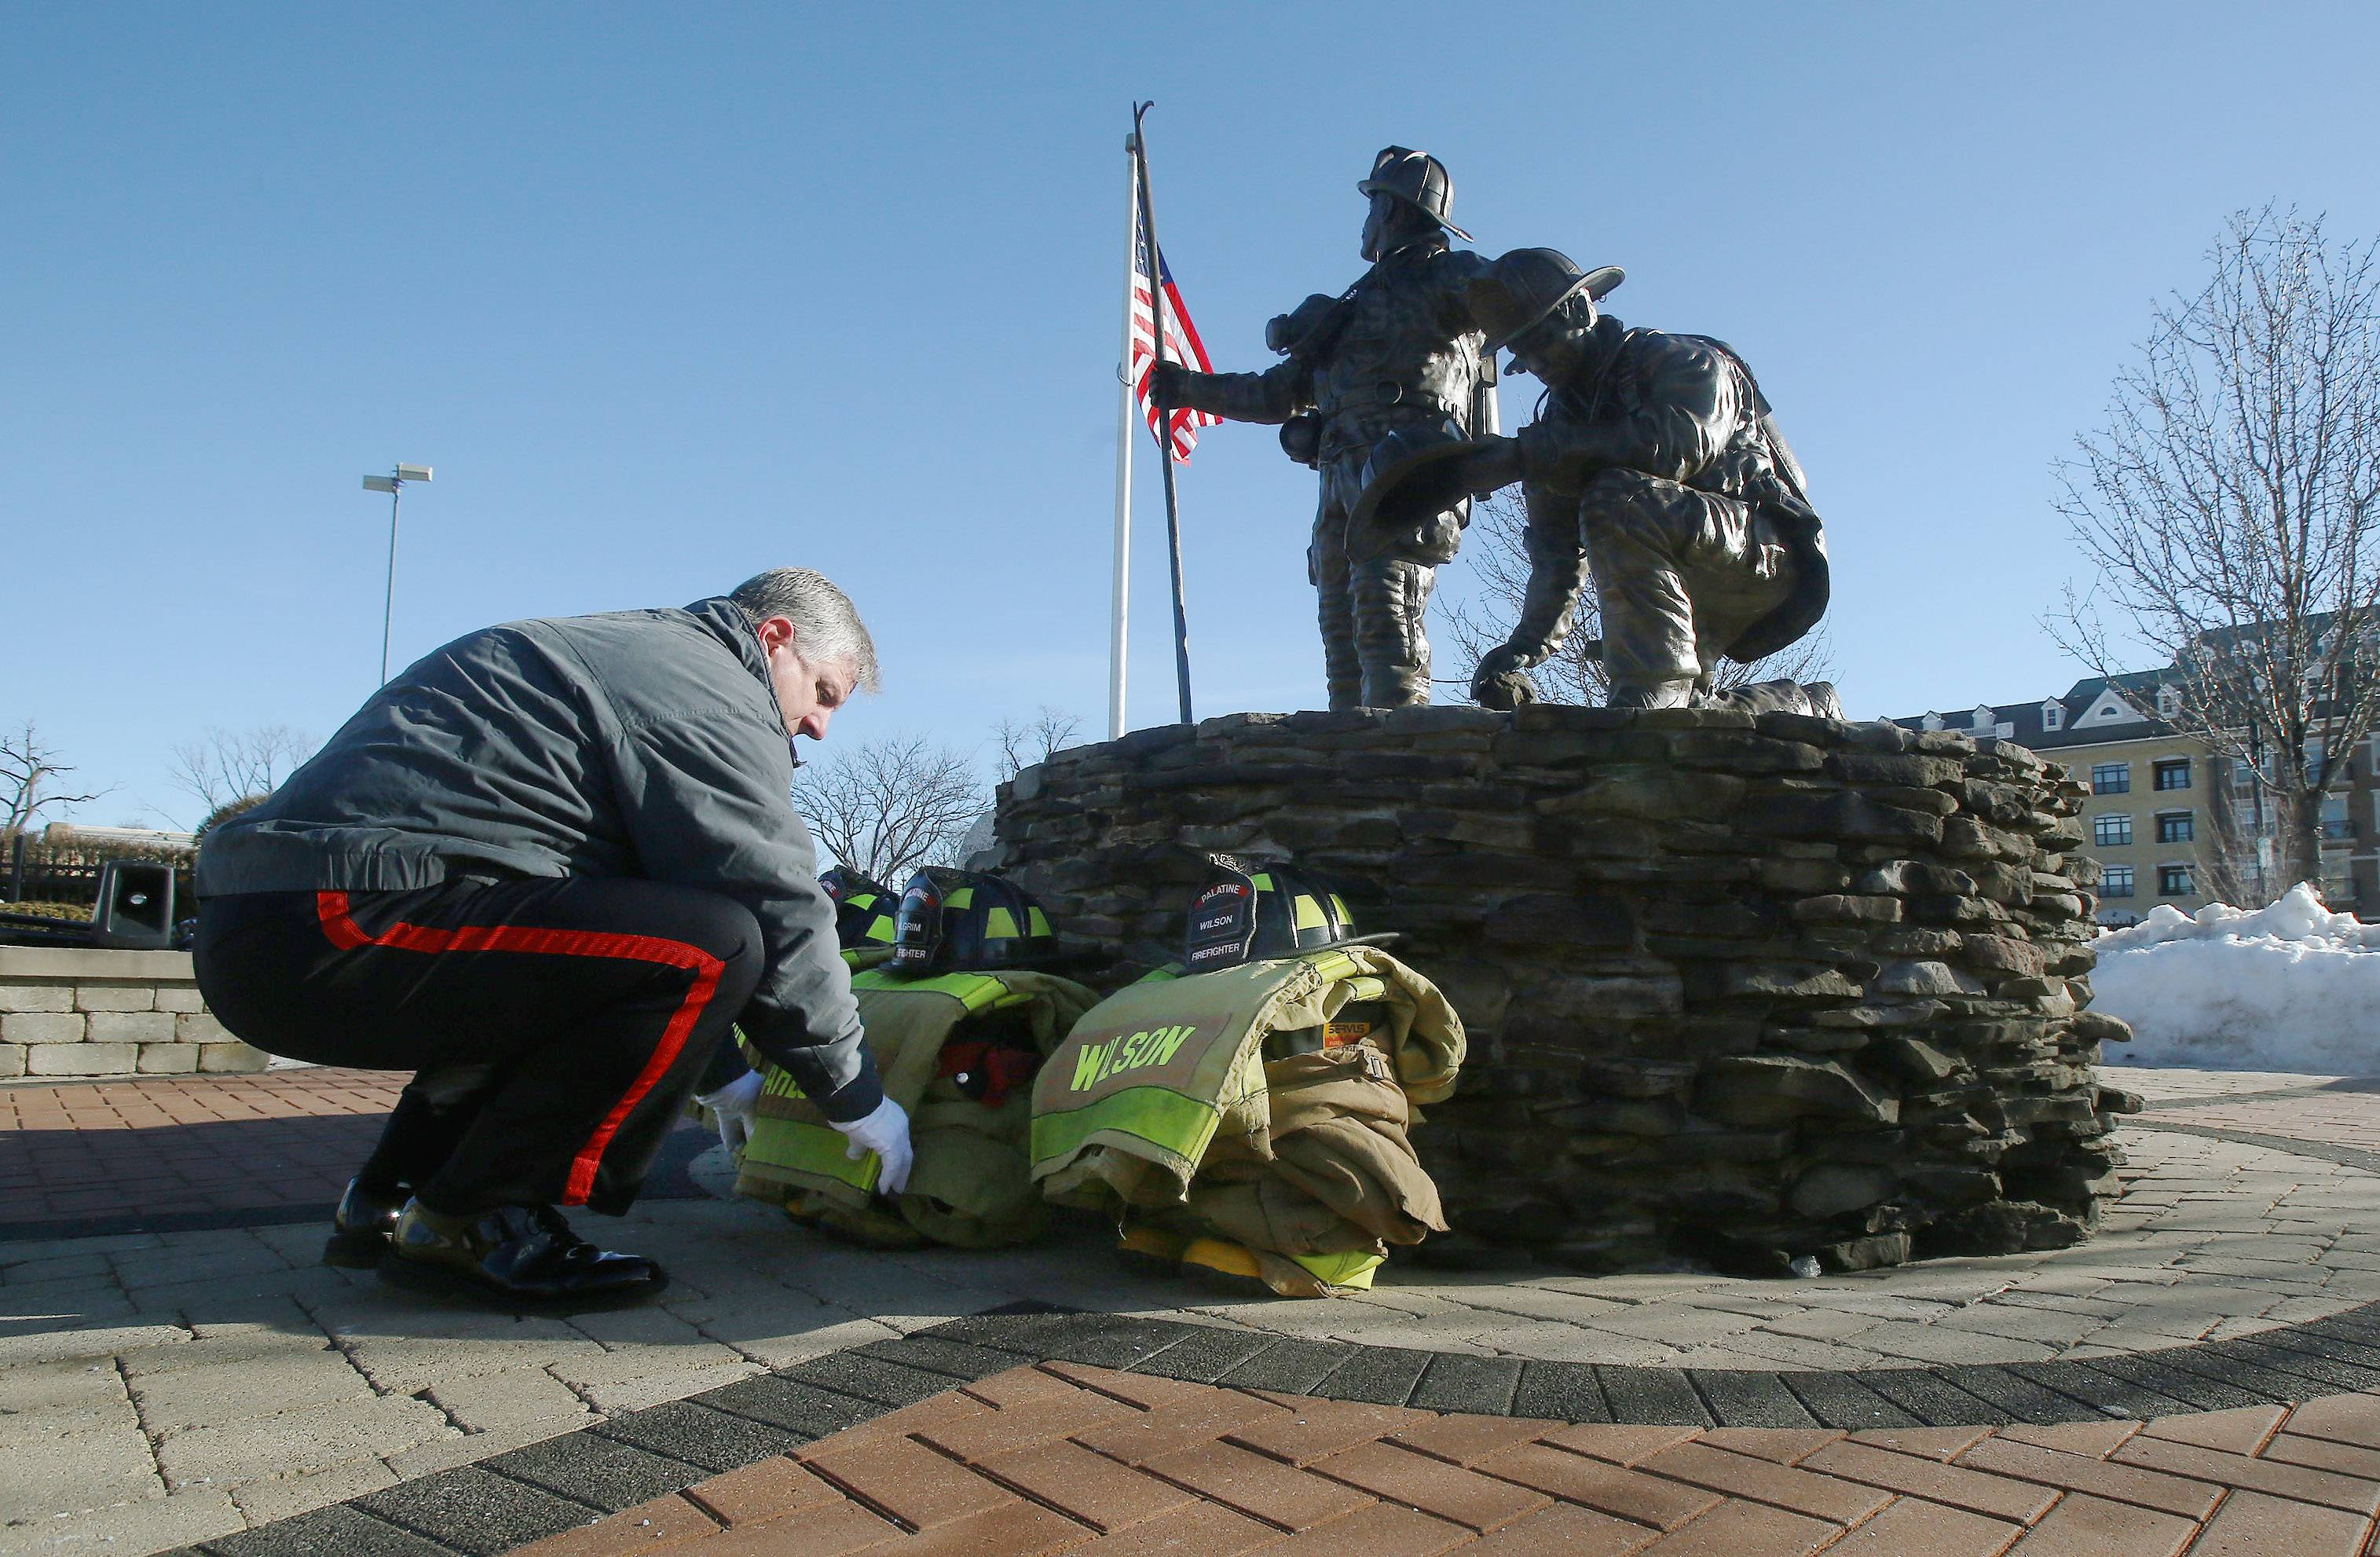 Palatine firefighter Kevin Piasecki adjusts the equipment set in front of the Palatine Firefighters Memorial downtown Sunday before the annual ceremony honoring three volunteer firefighters who died in the line of duty Feb. 23, 1973. Firefighters John Wilson, Richard Freeman and Warren Ahlgrim lost their lives fighting a fire in the Ben Franklin store in the village's downtown.